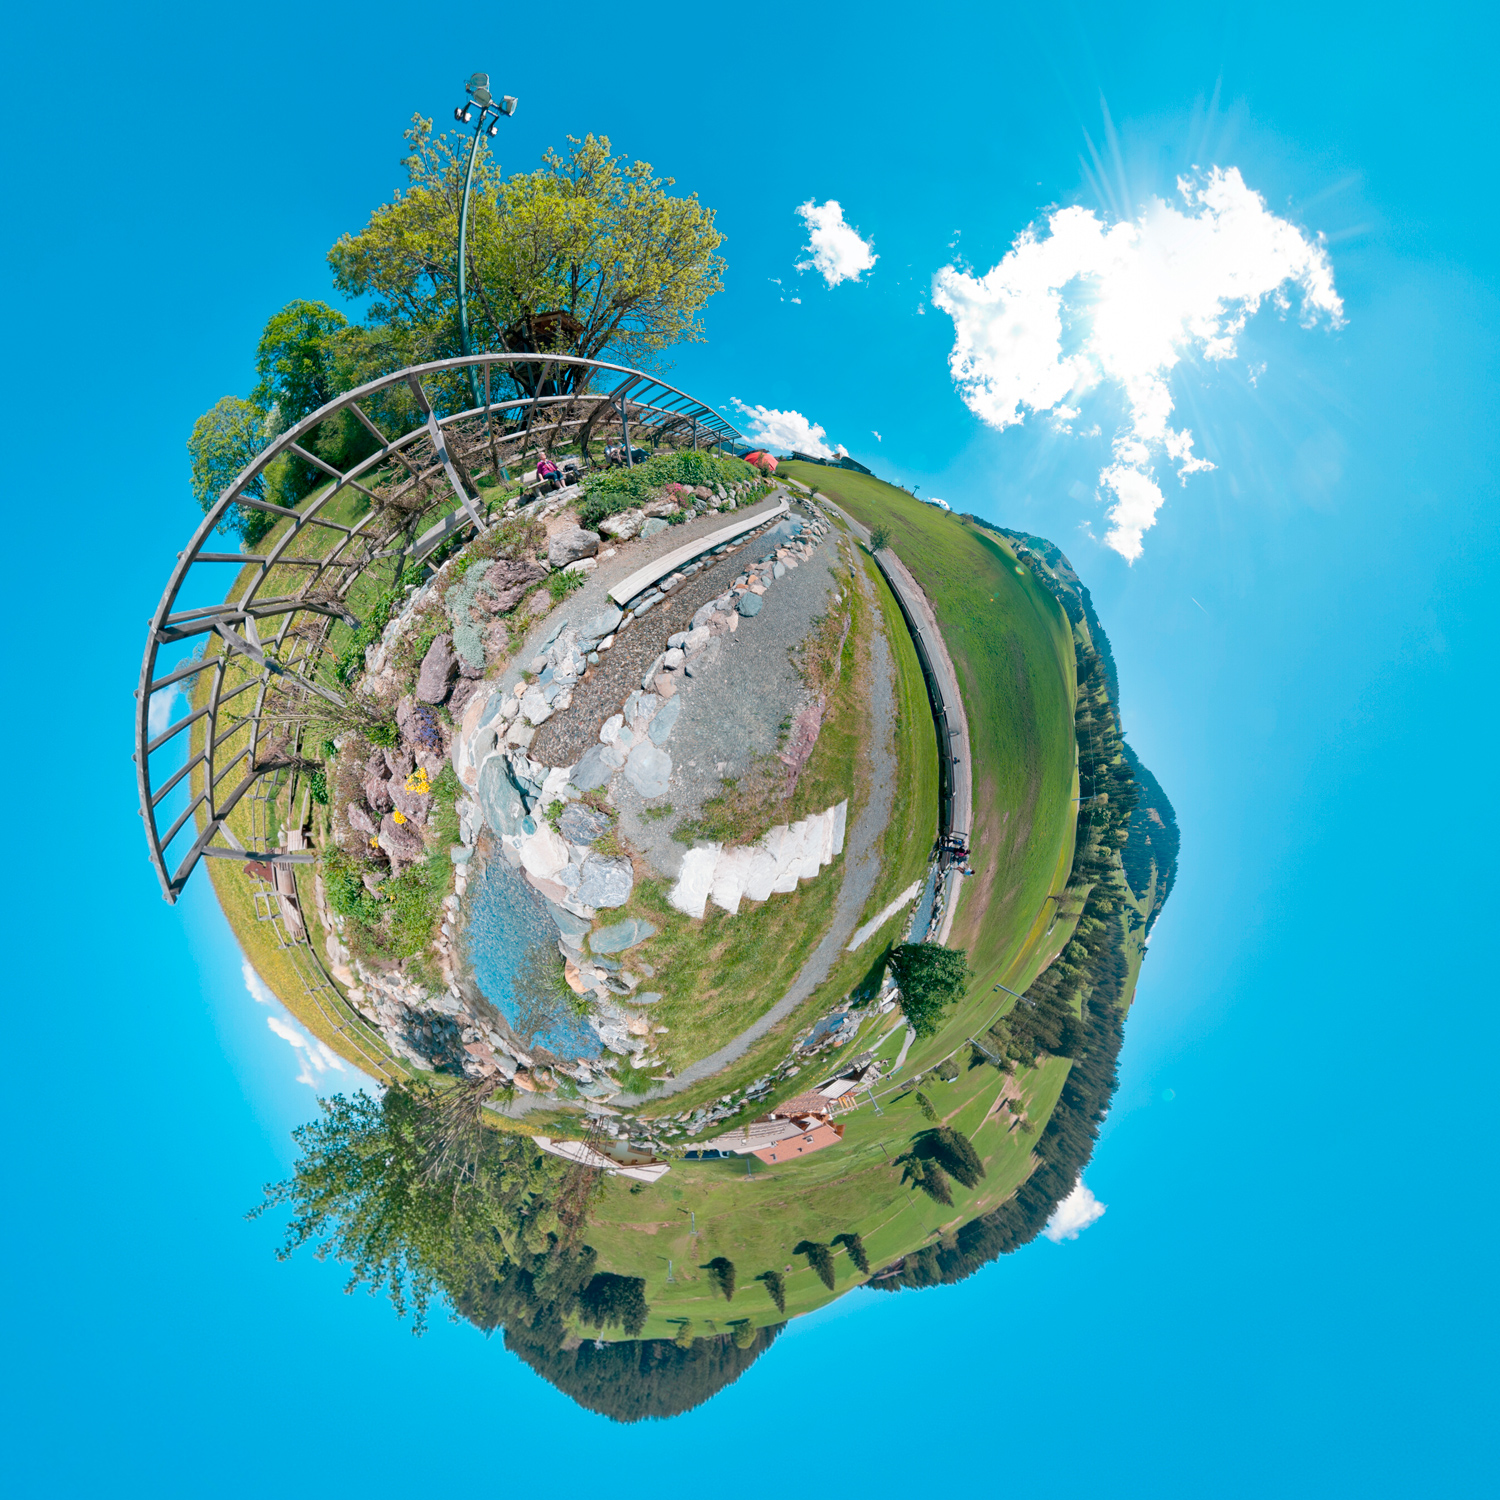 Panorama 142 - Little Planet